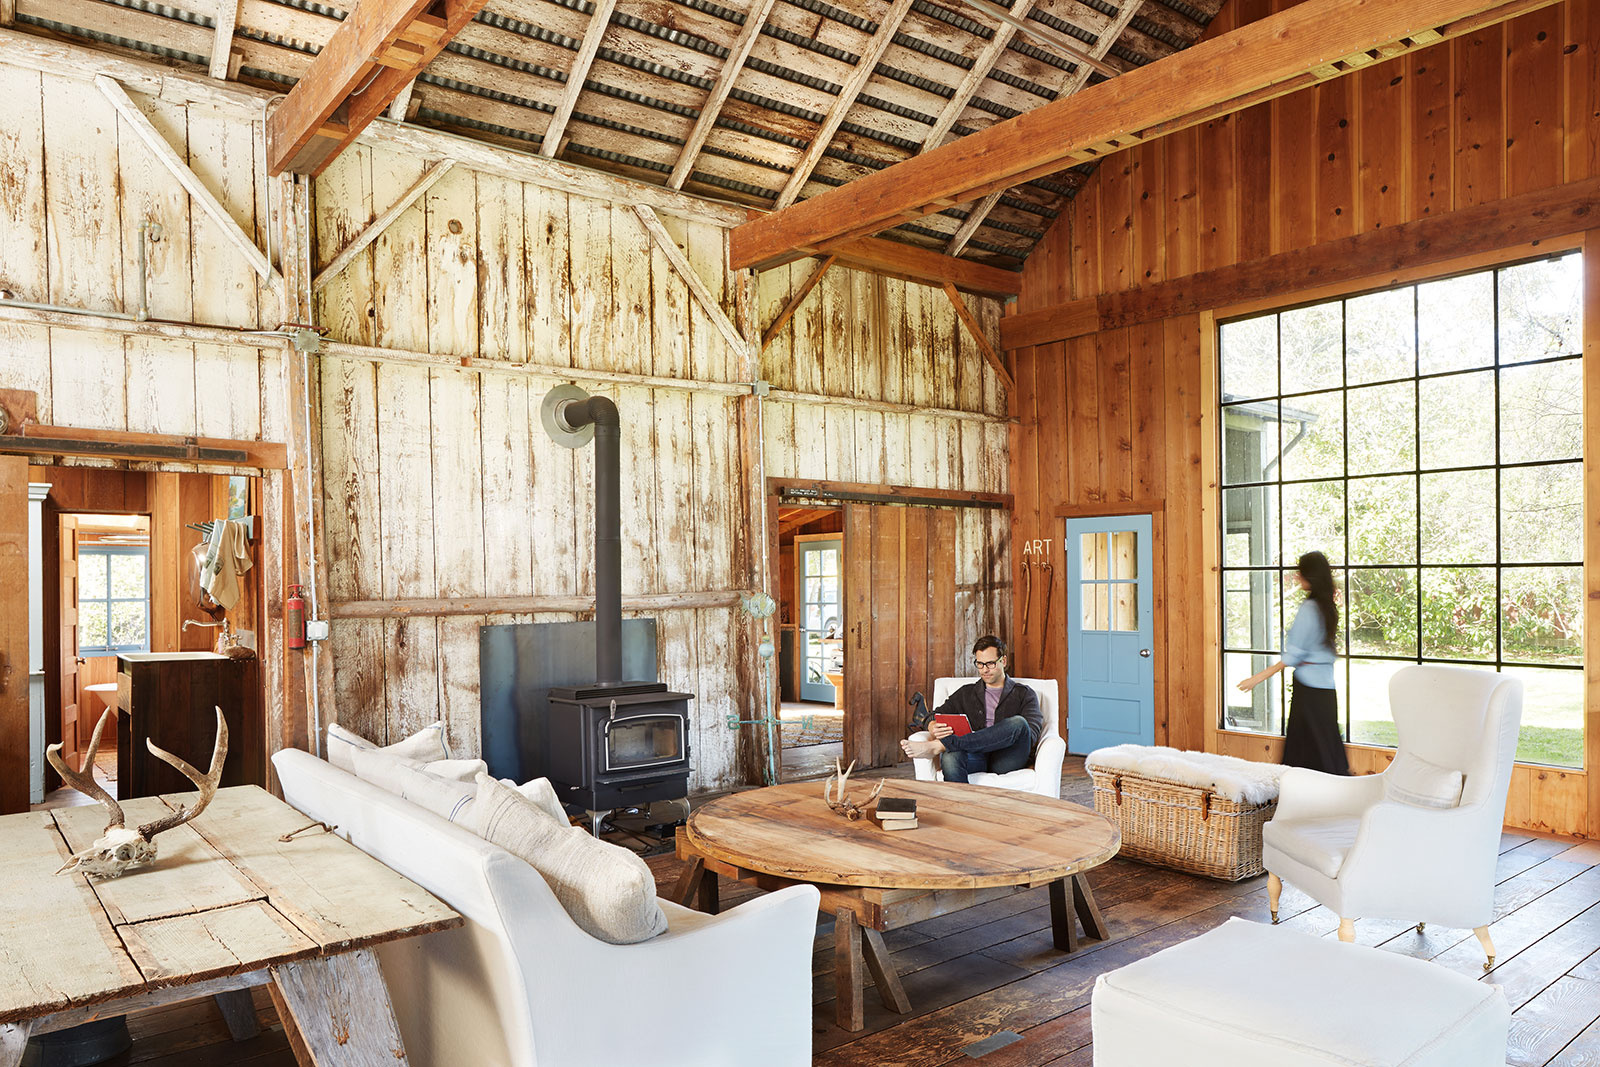 Barn home in West Marin, CA  | Trinette+Chris Photographers